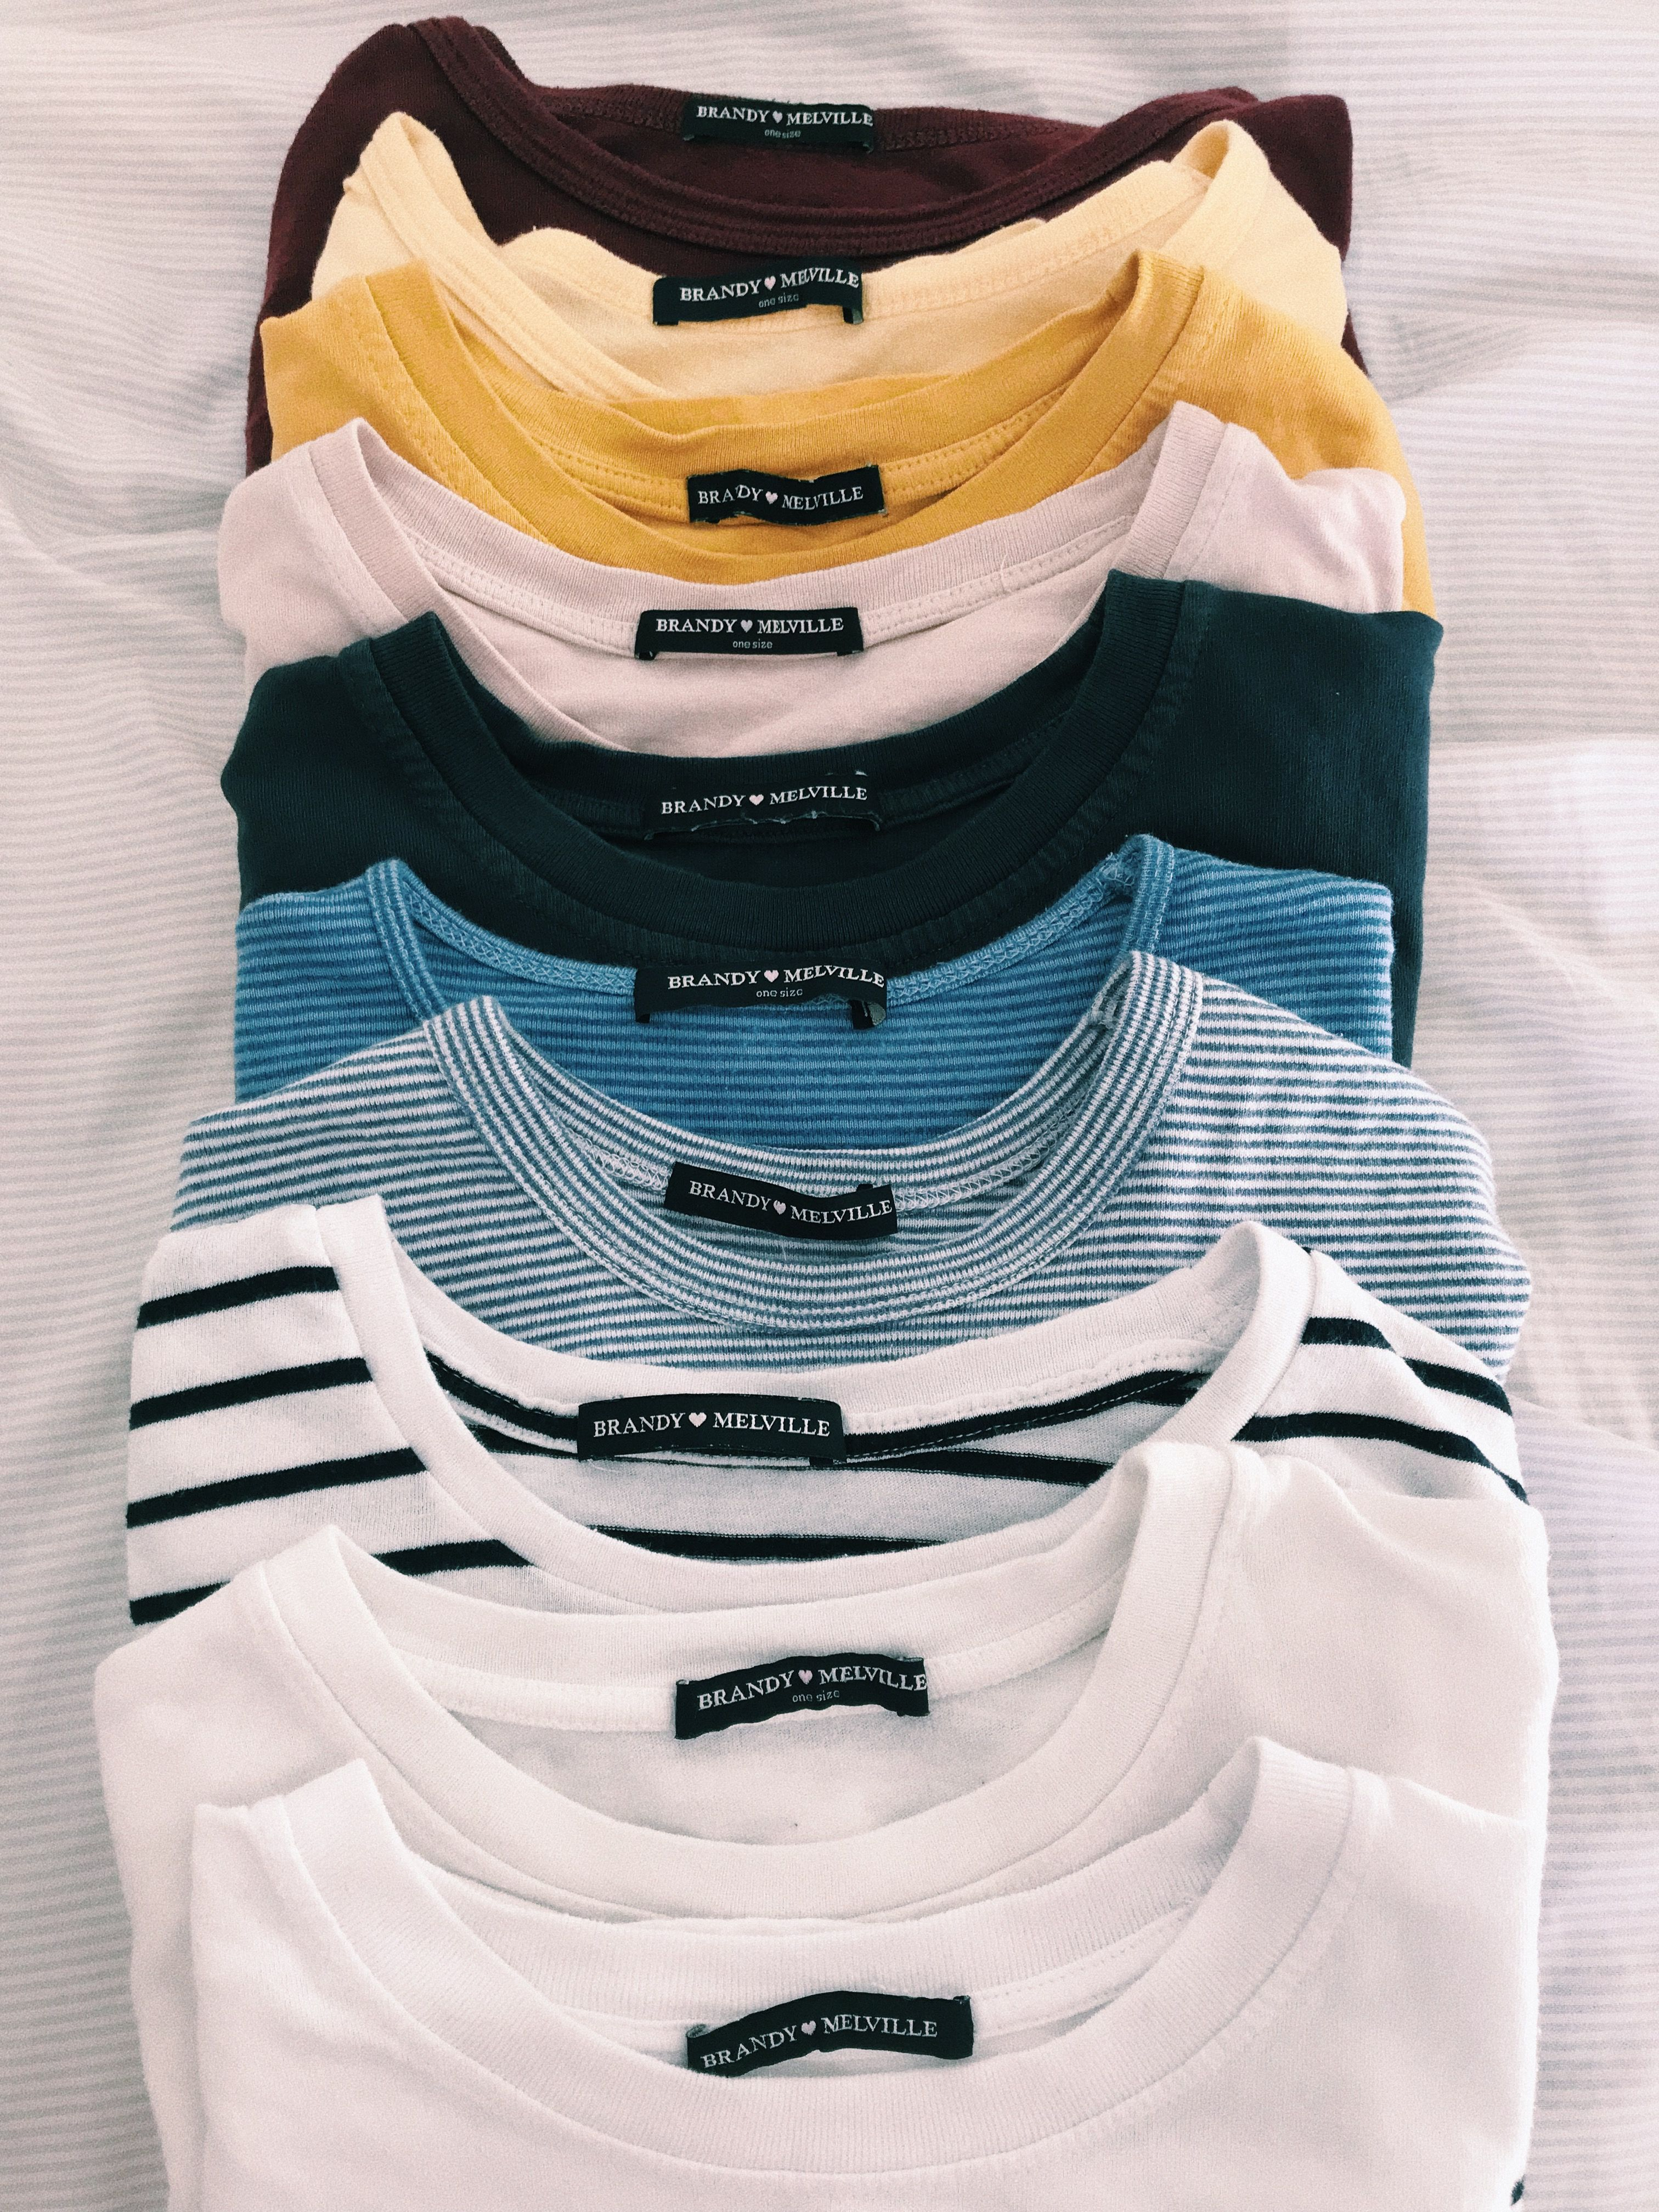 Pin by angella aguilar on vsco dsco in 2019 | Outfits